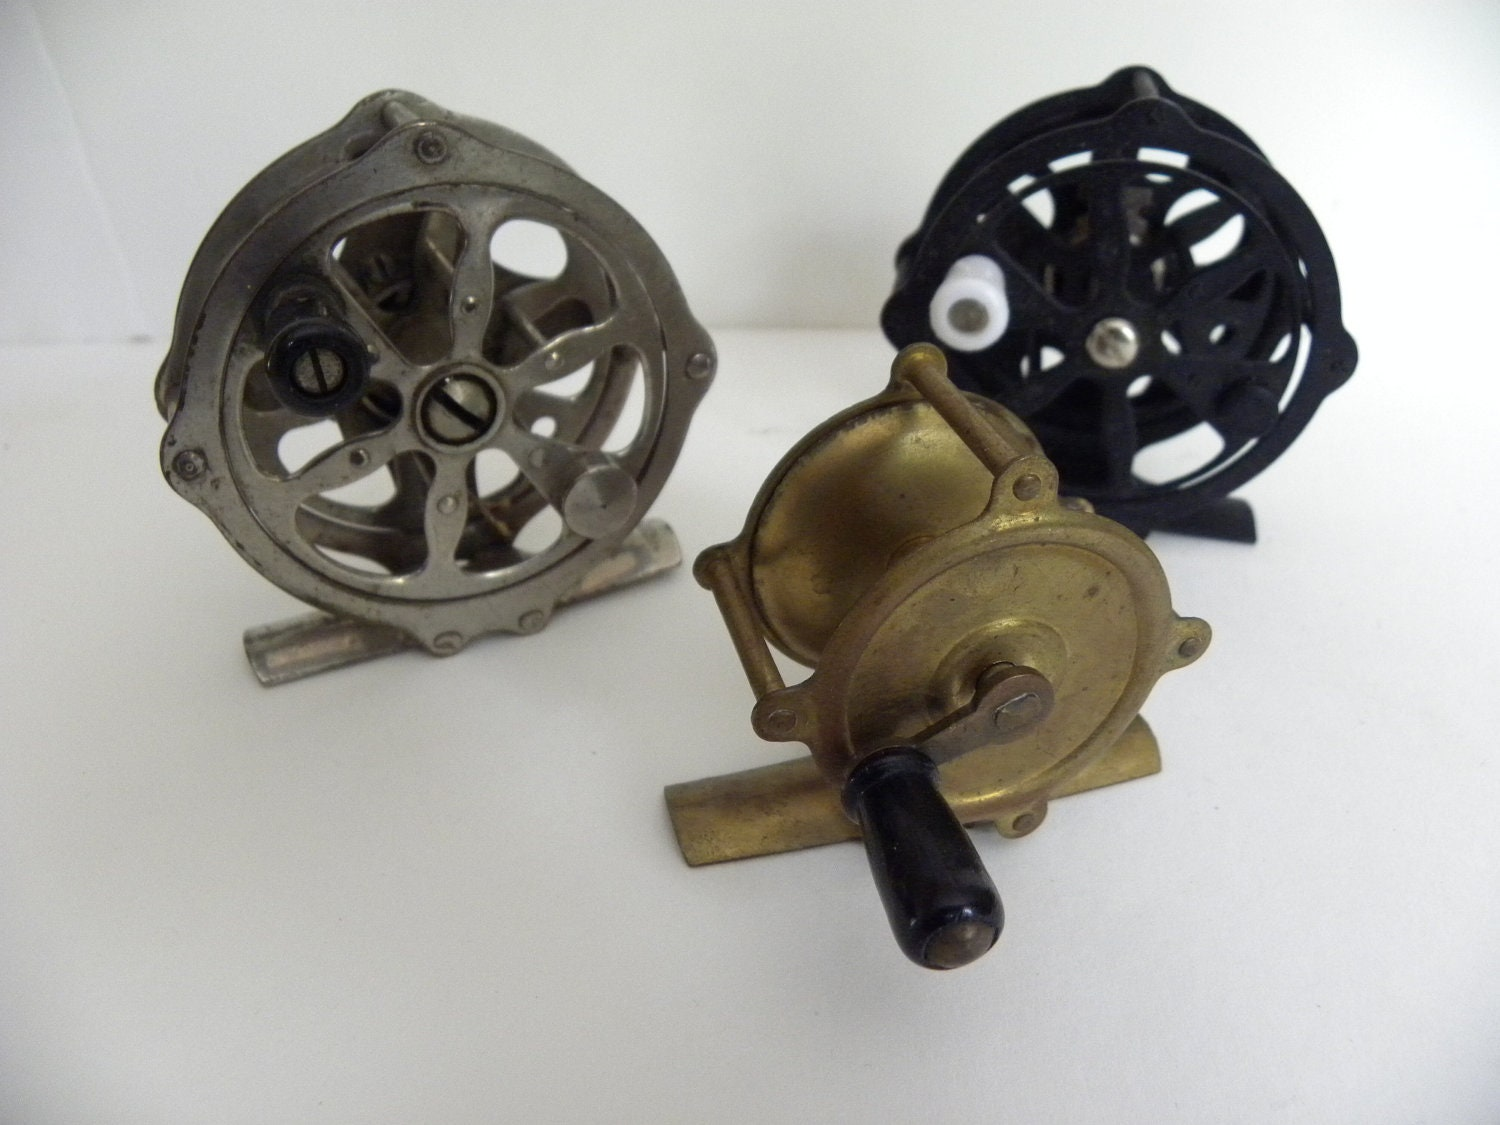 Vintage fly fishing reels by vintageindustriesinc on etsy for Vintage fishing reels for sale